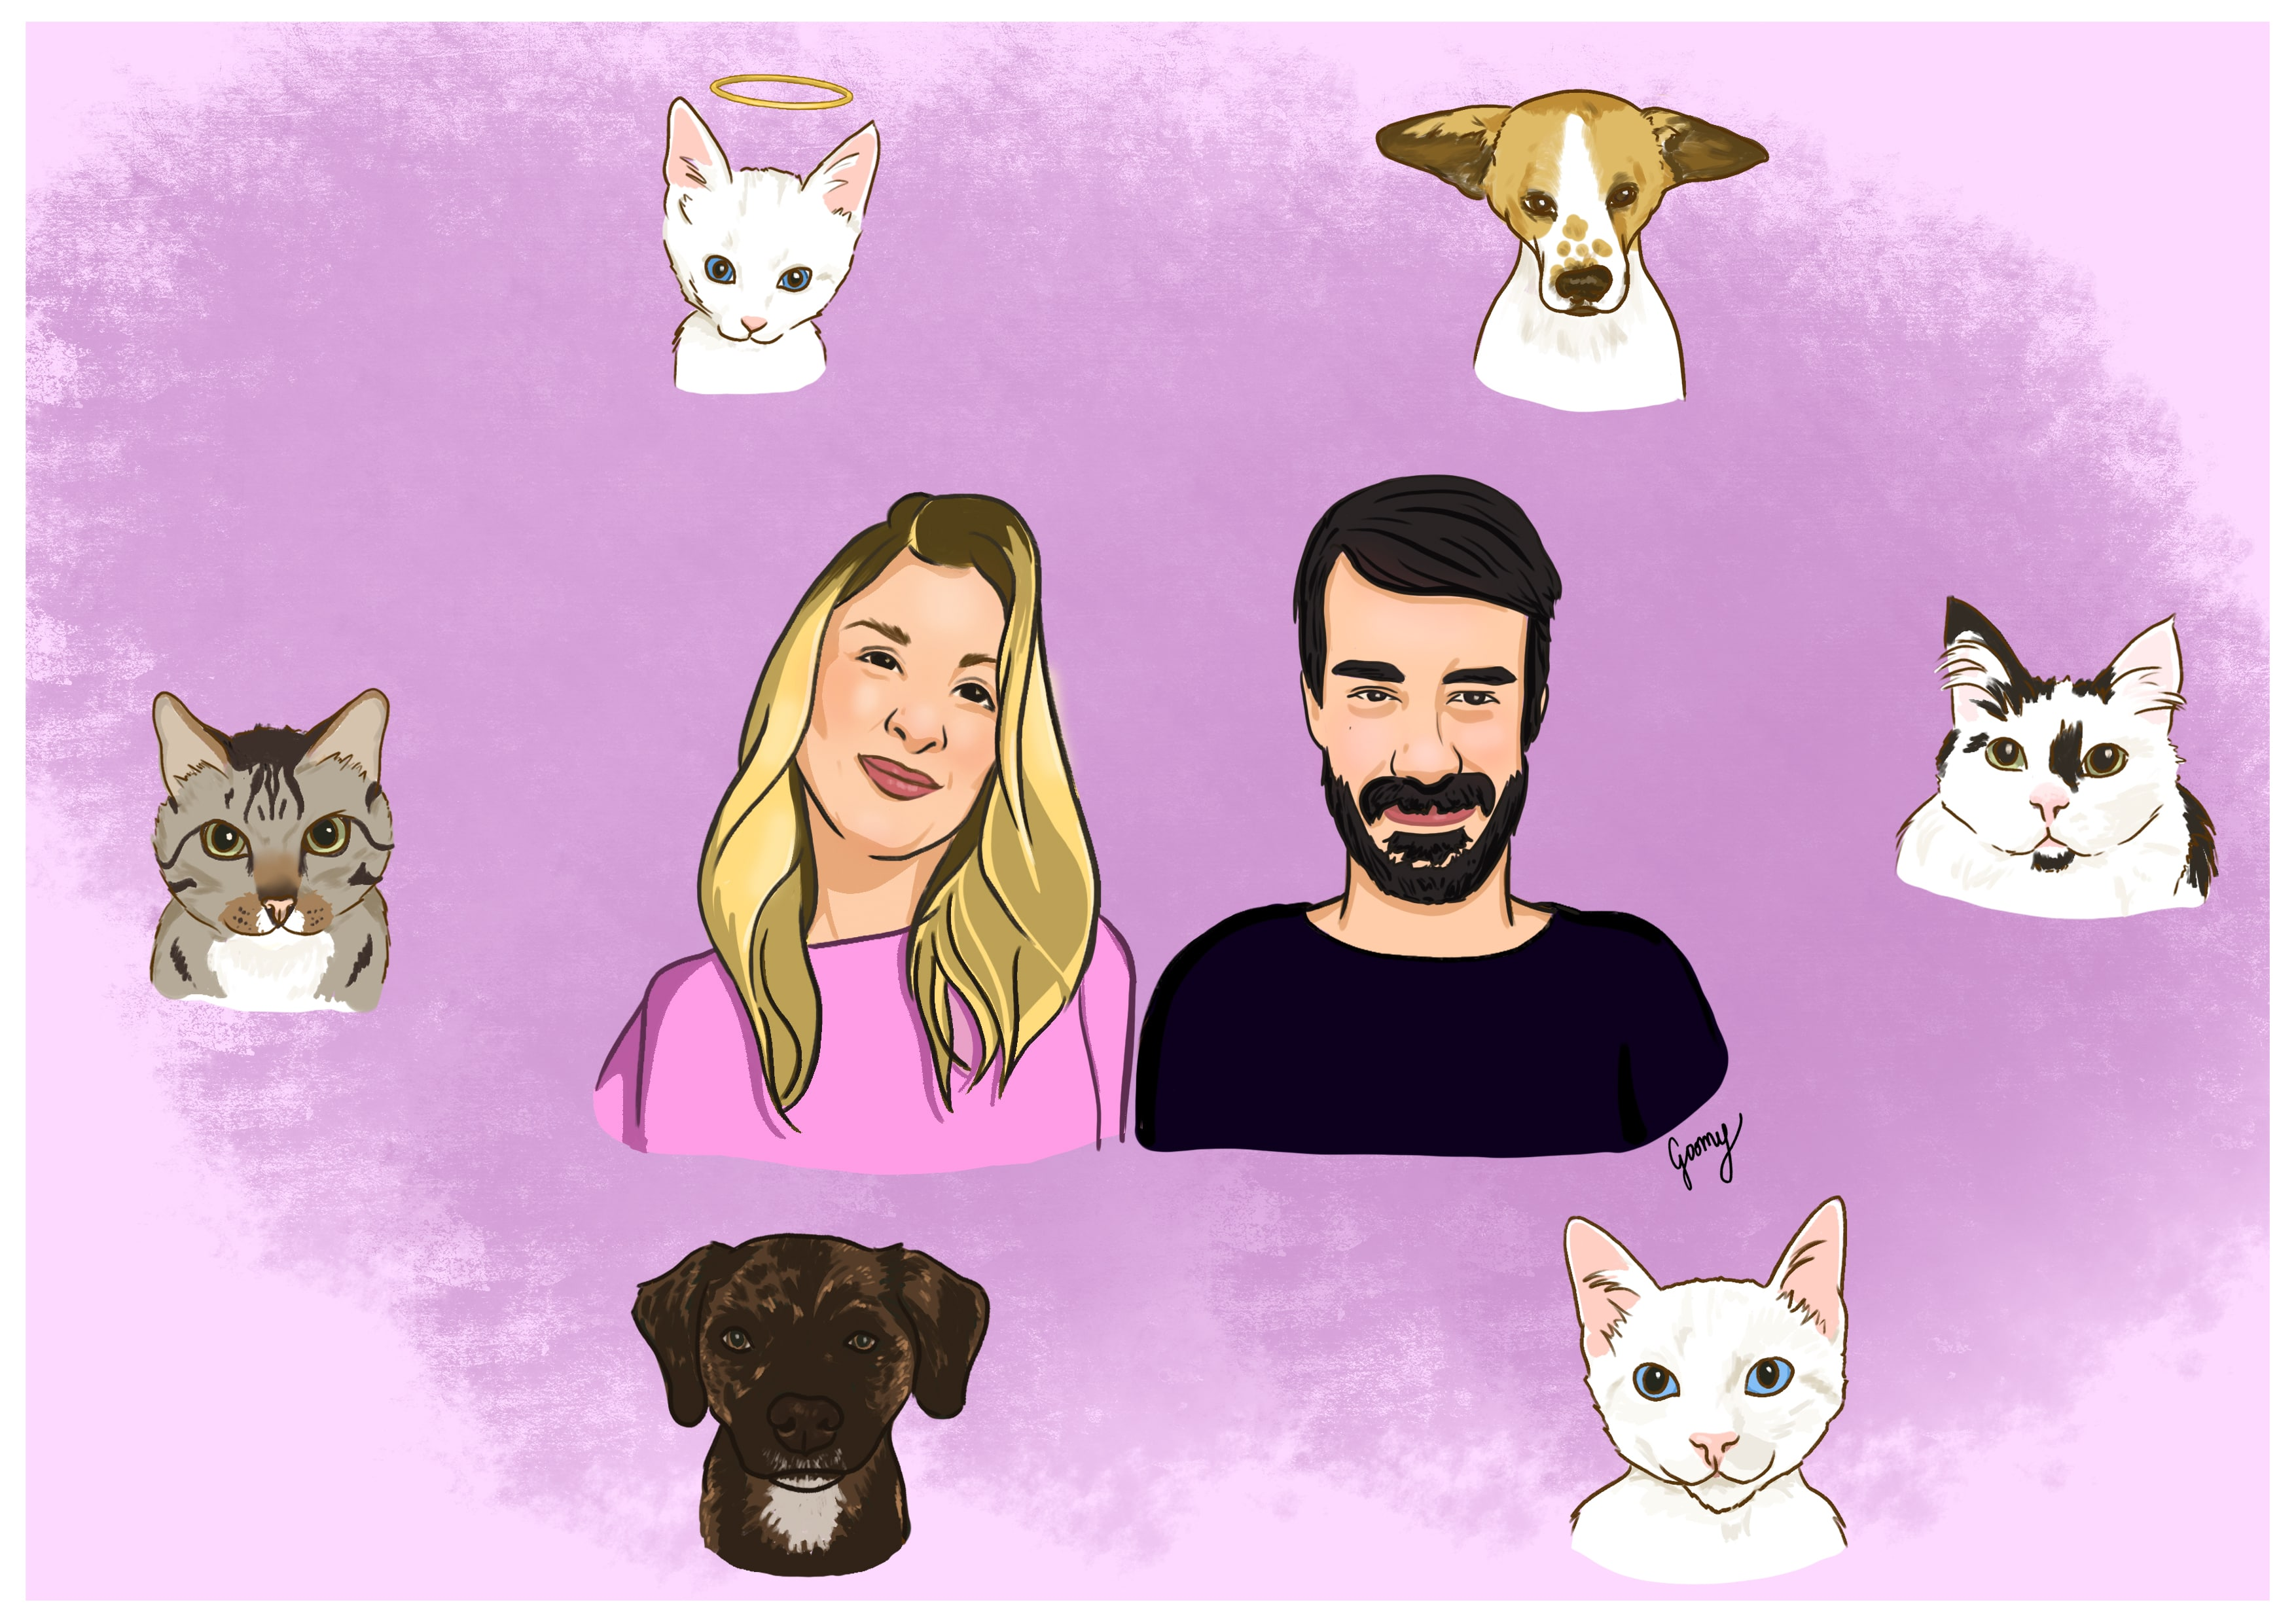 digital drawing of a couple surrounded by their cats and dogs over a pink background